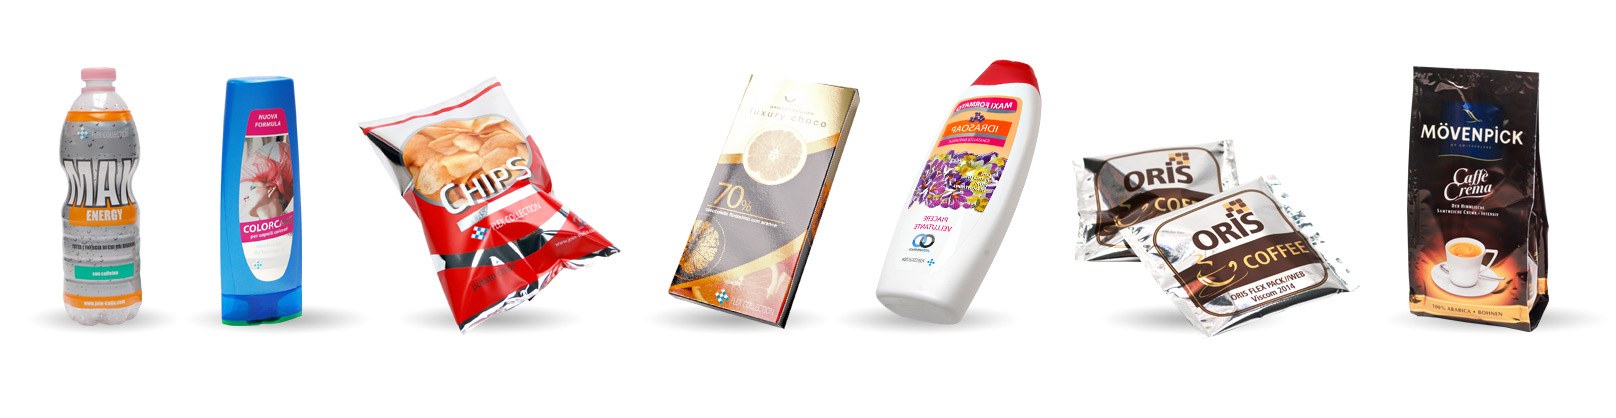 ORIS flexpack - sistema per la stampa di mock-up e per la prototipazione packaging